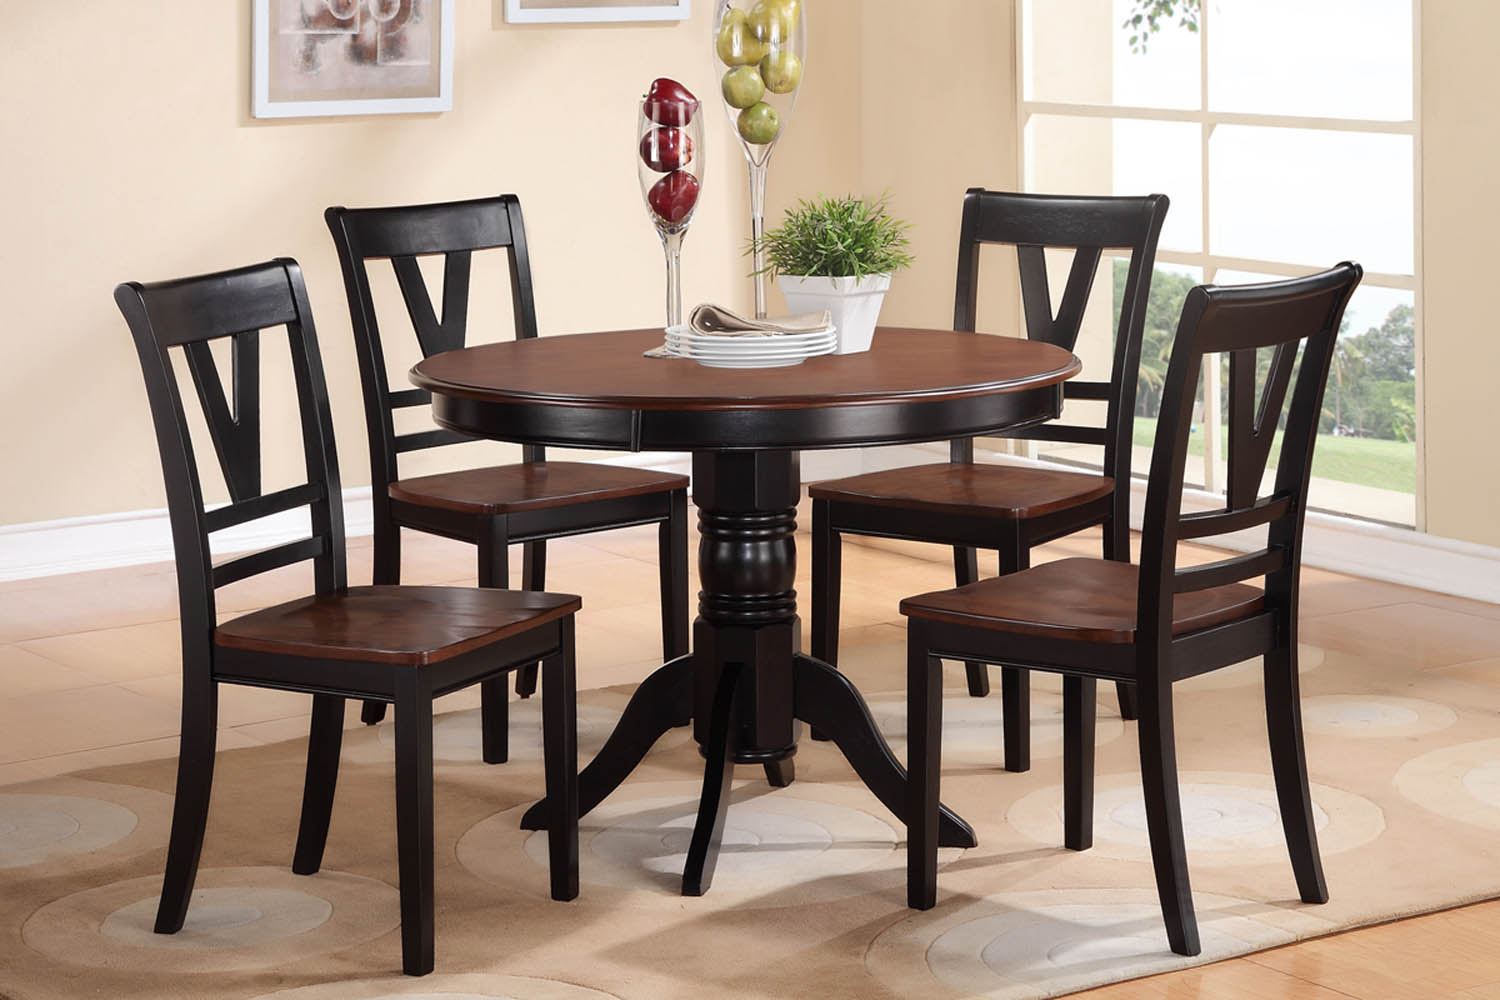 5 piece two tone round solid wood table set for Solid wood round dining table set